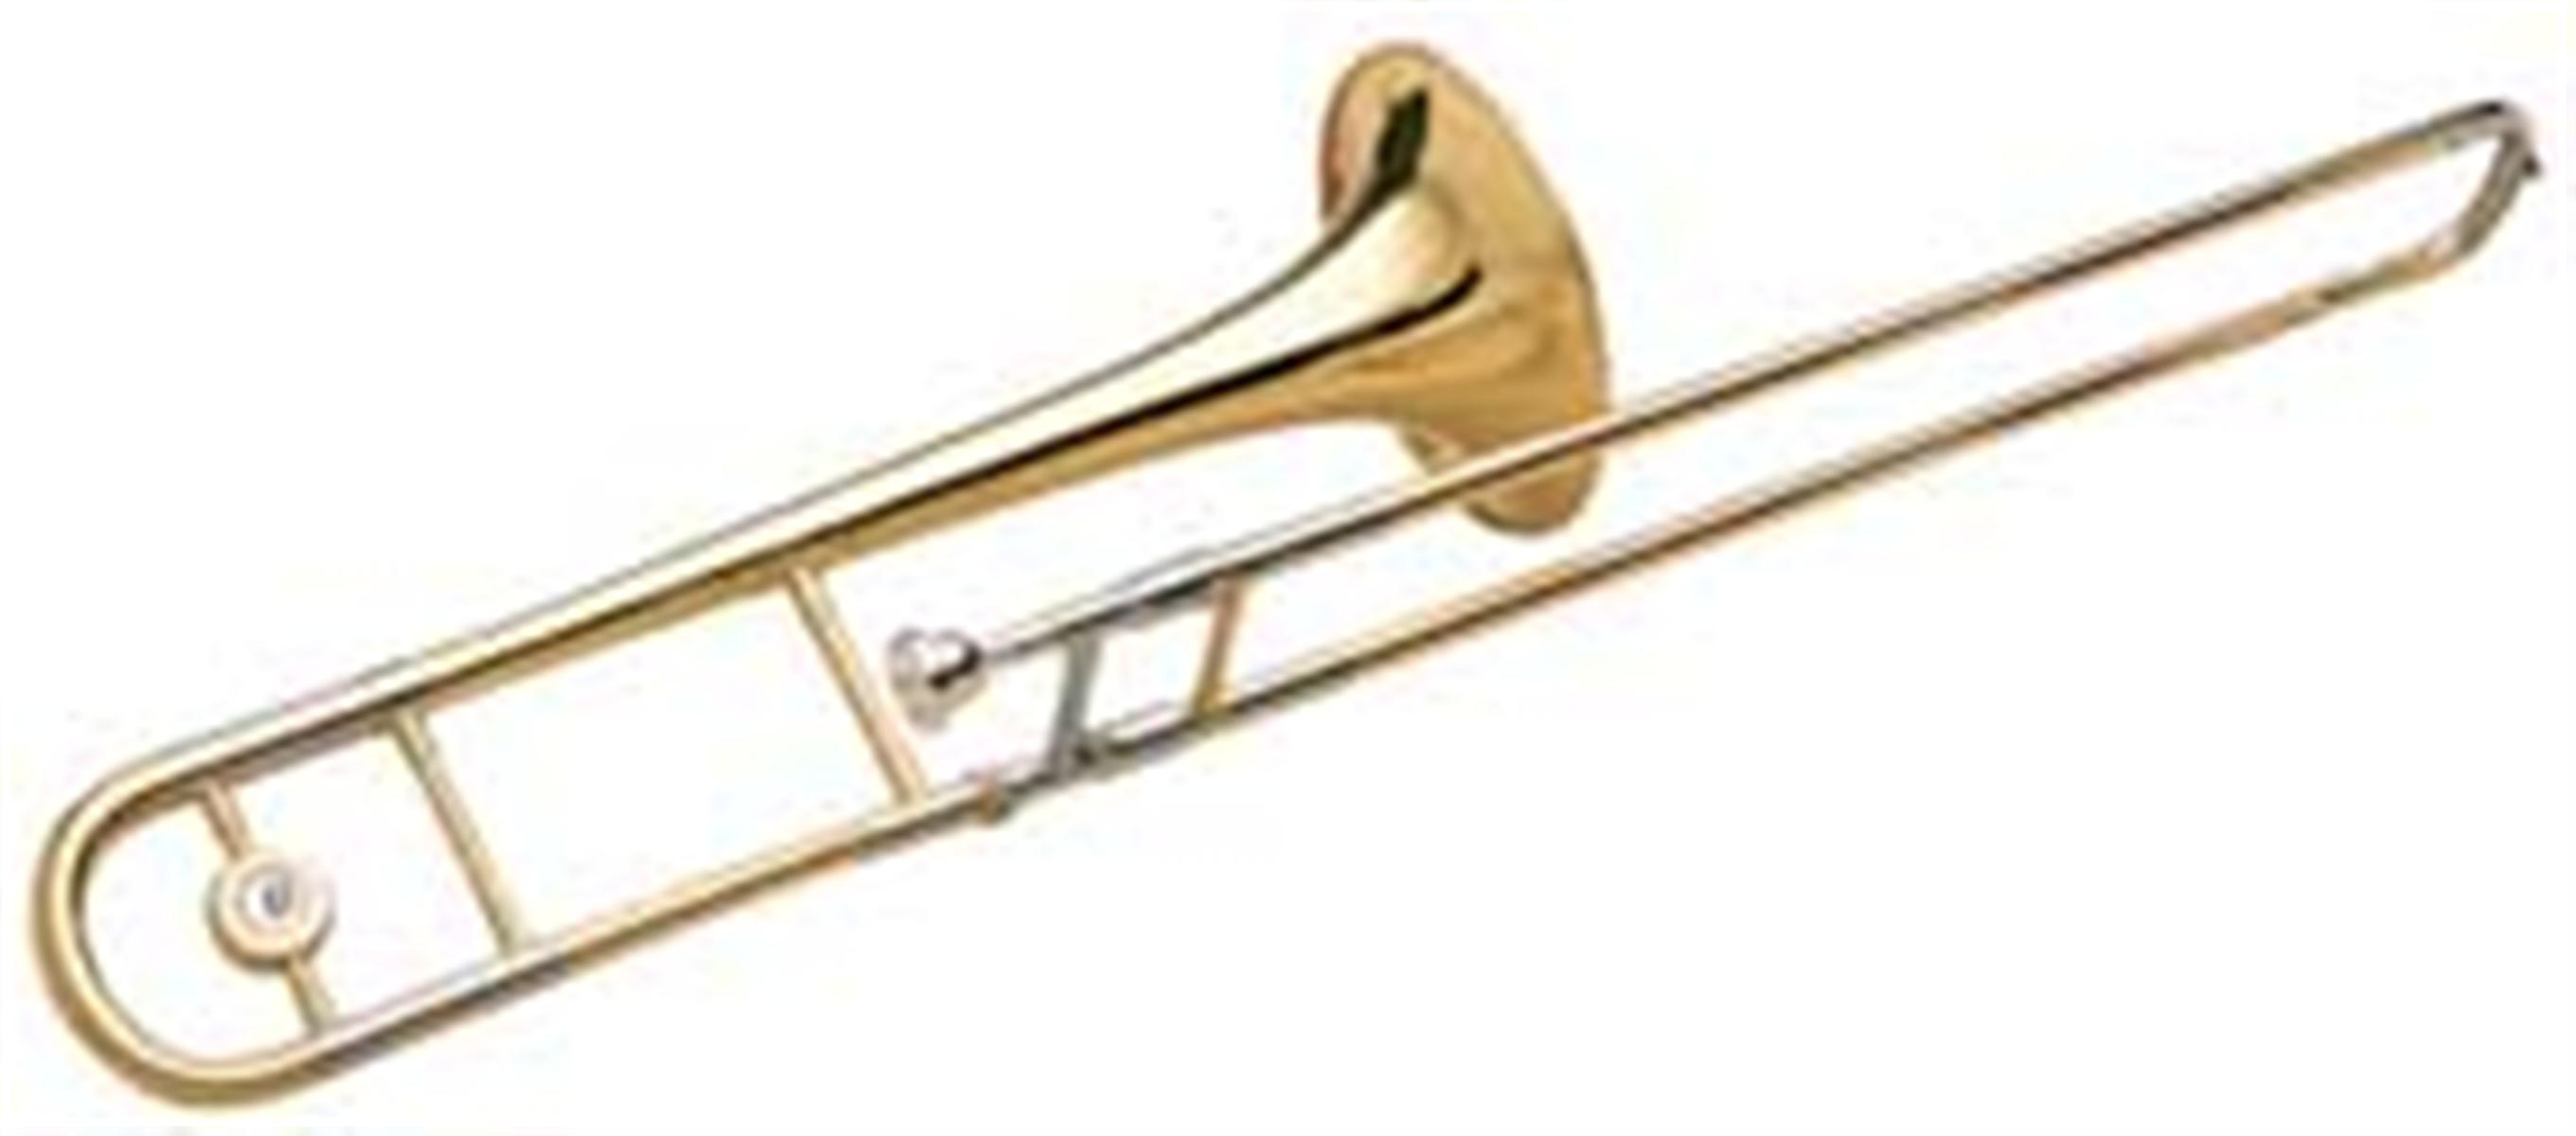 Blessing Btb 8 Artist Series Trombone Lacquered Brass And More